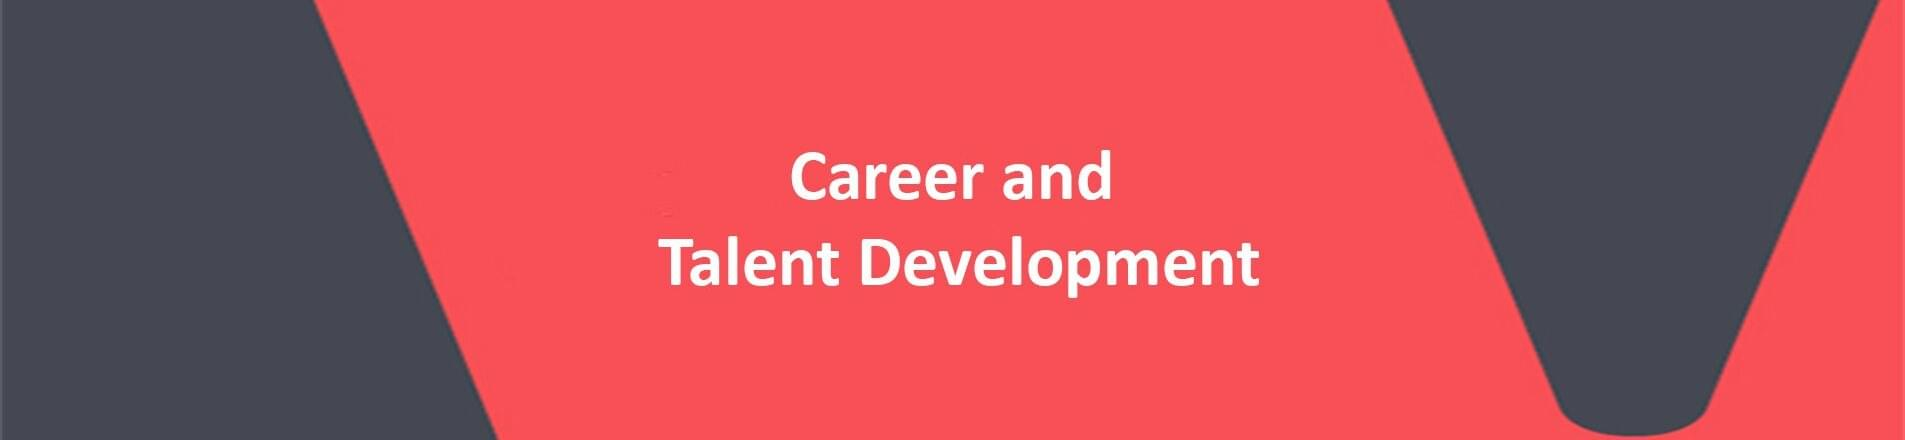 Career and Talent Development.